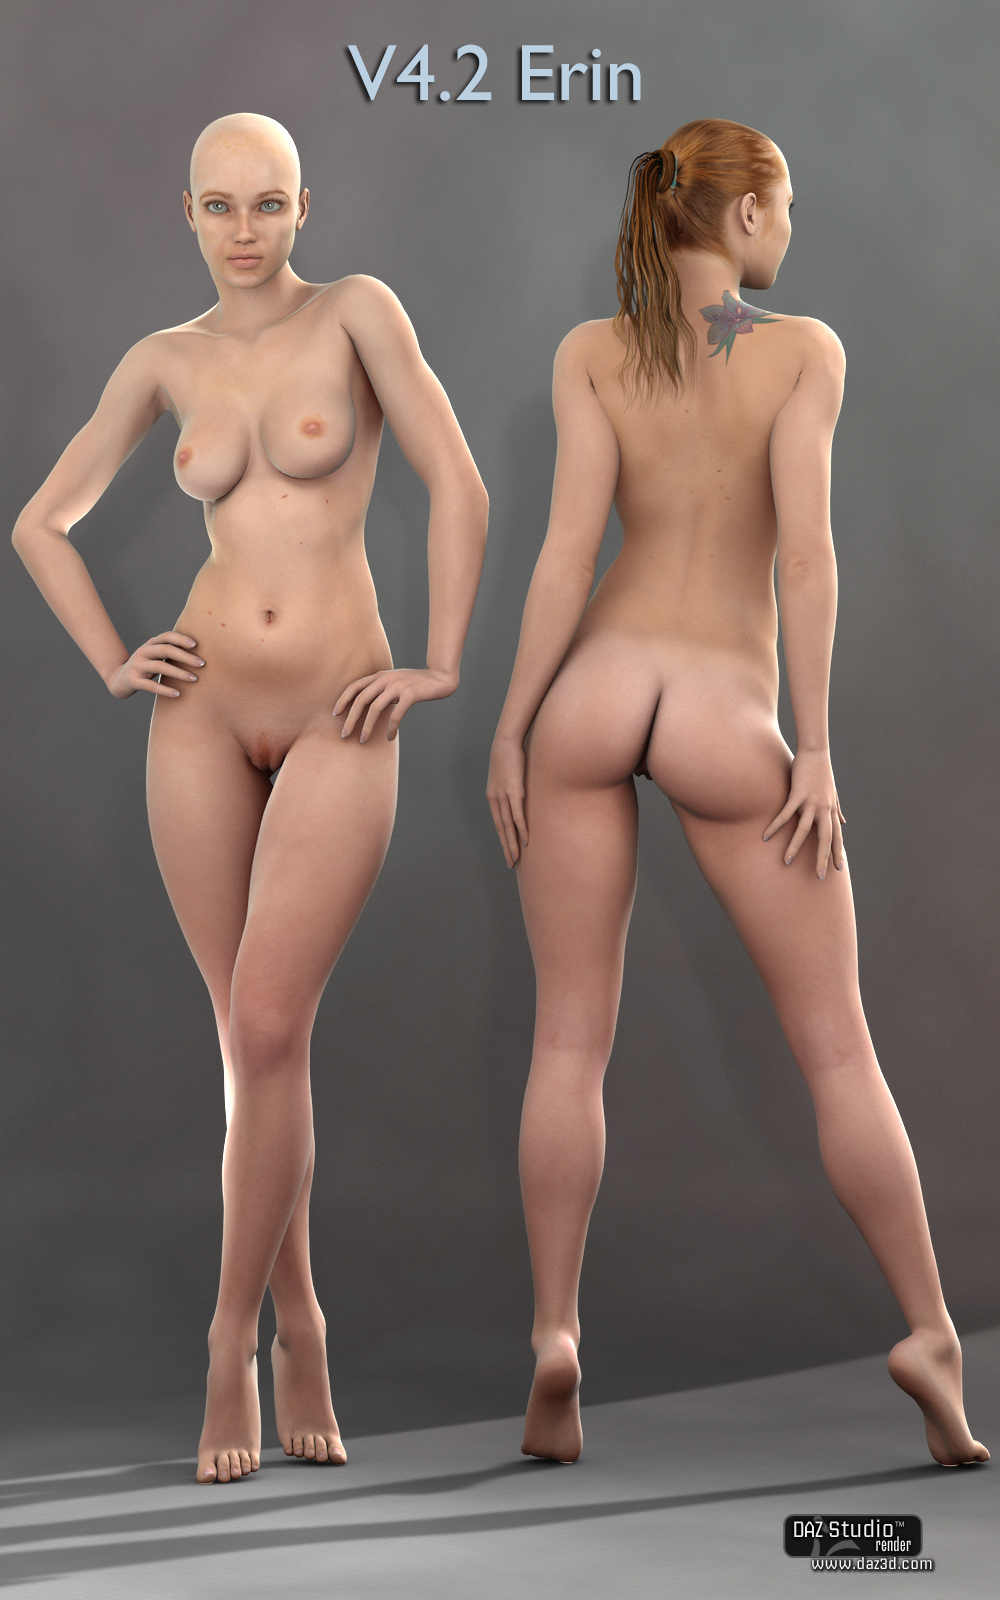 3 d elves more 3 d in my profile - 4 1